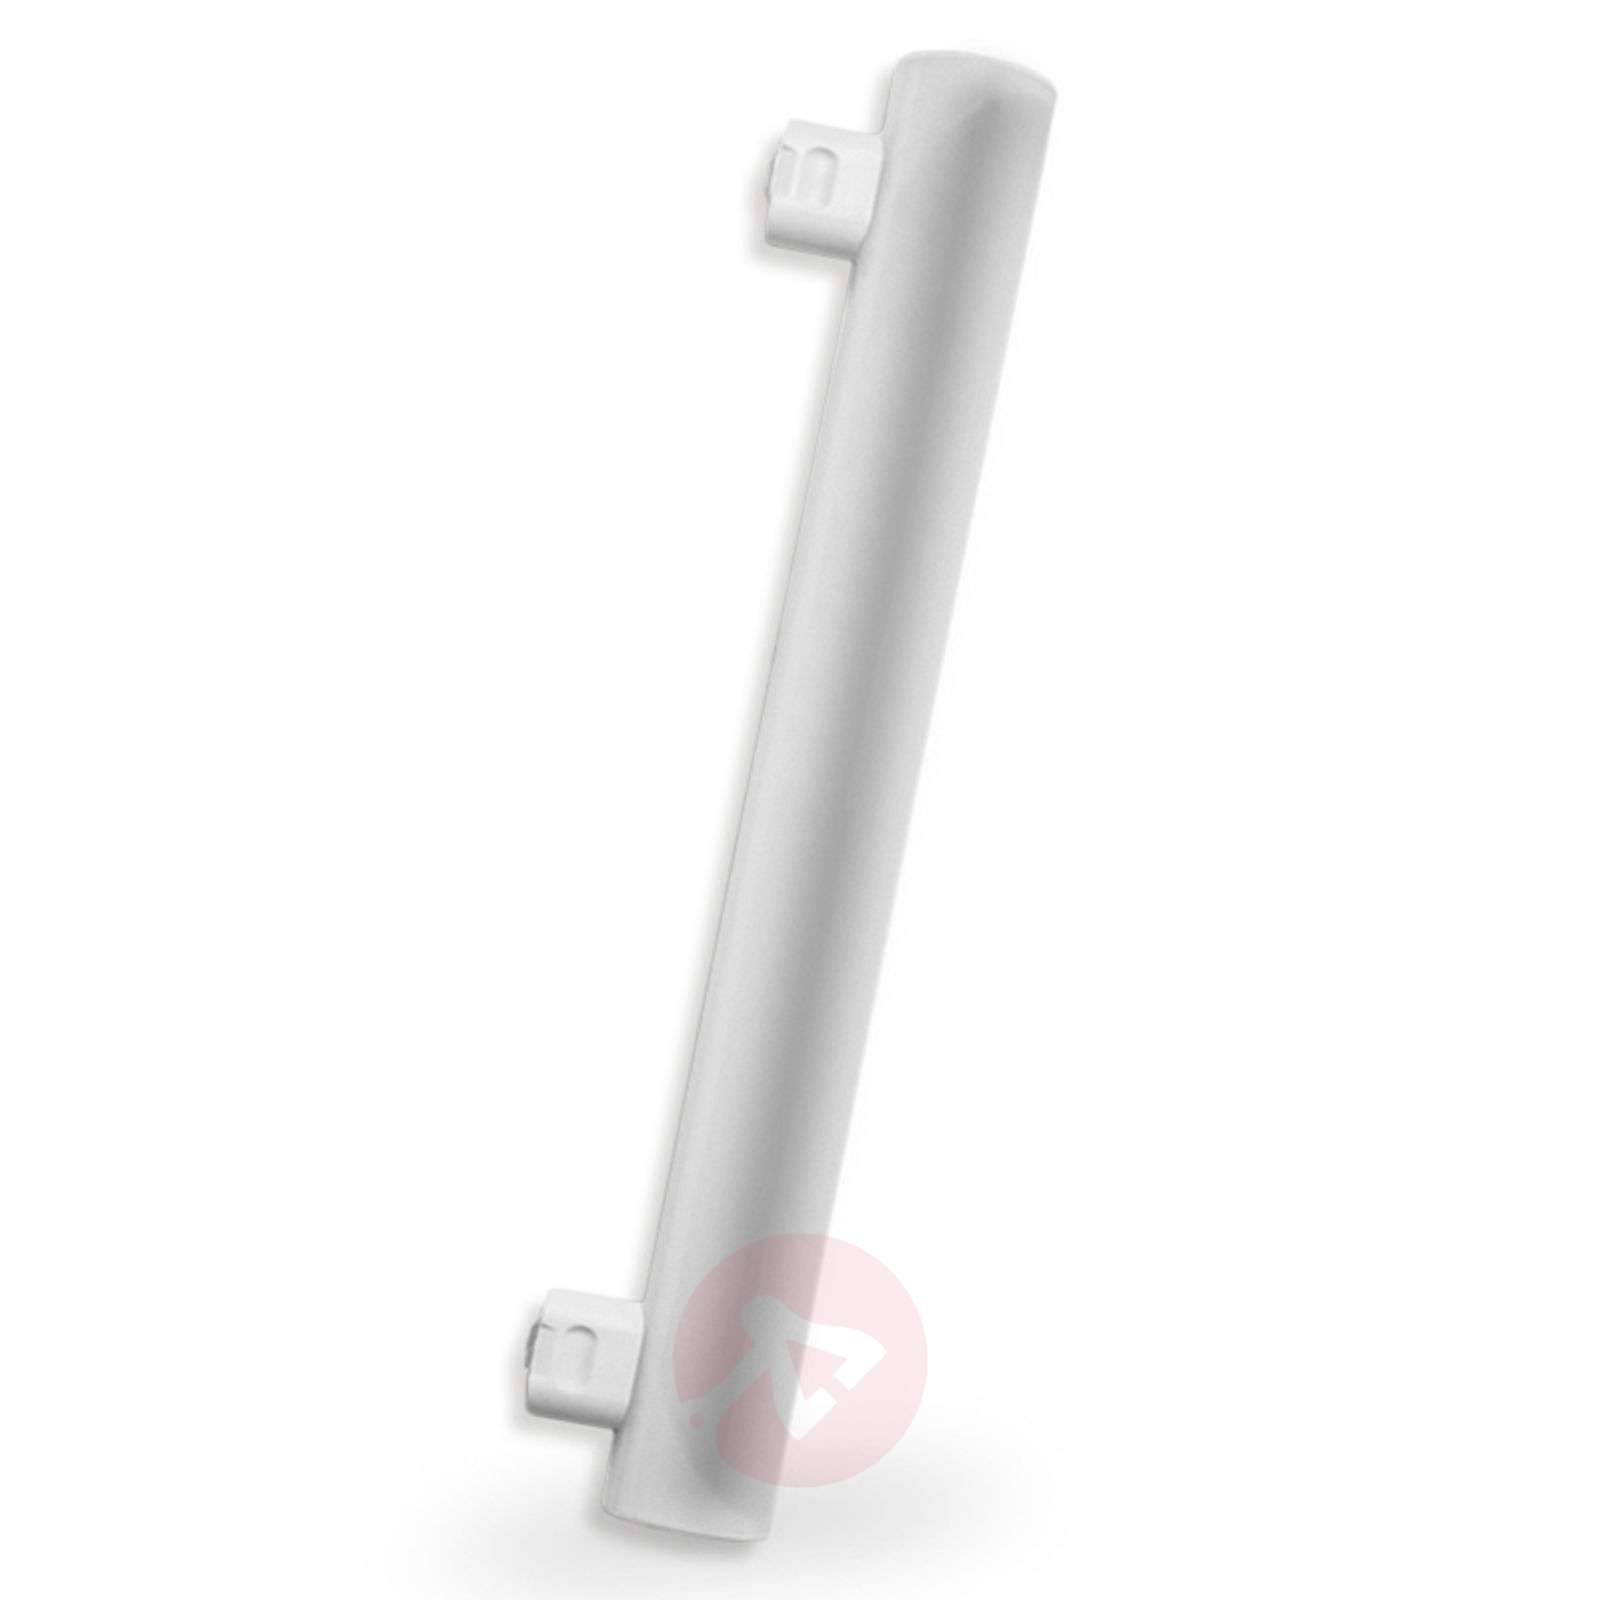 S14s 4W 827 bombilla linear LED 2 casquillos 300mm-7254967-01